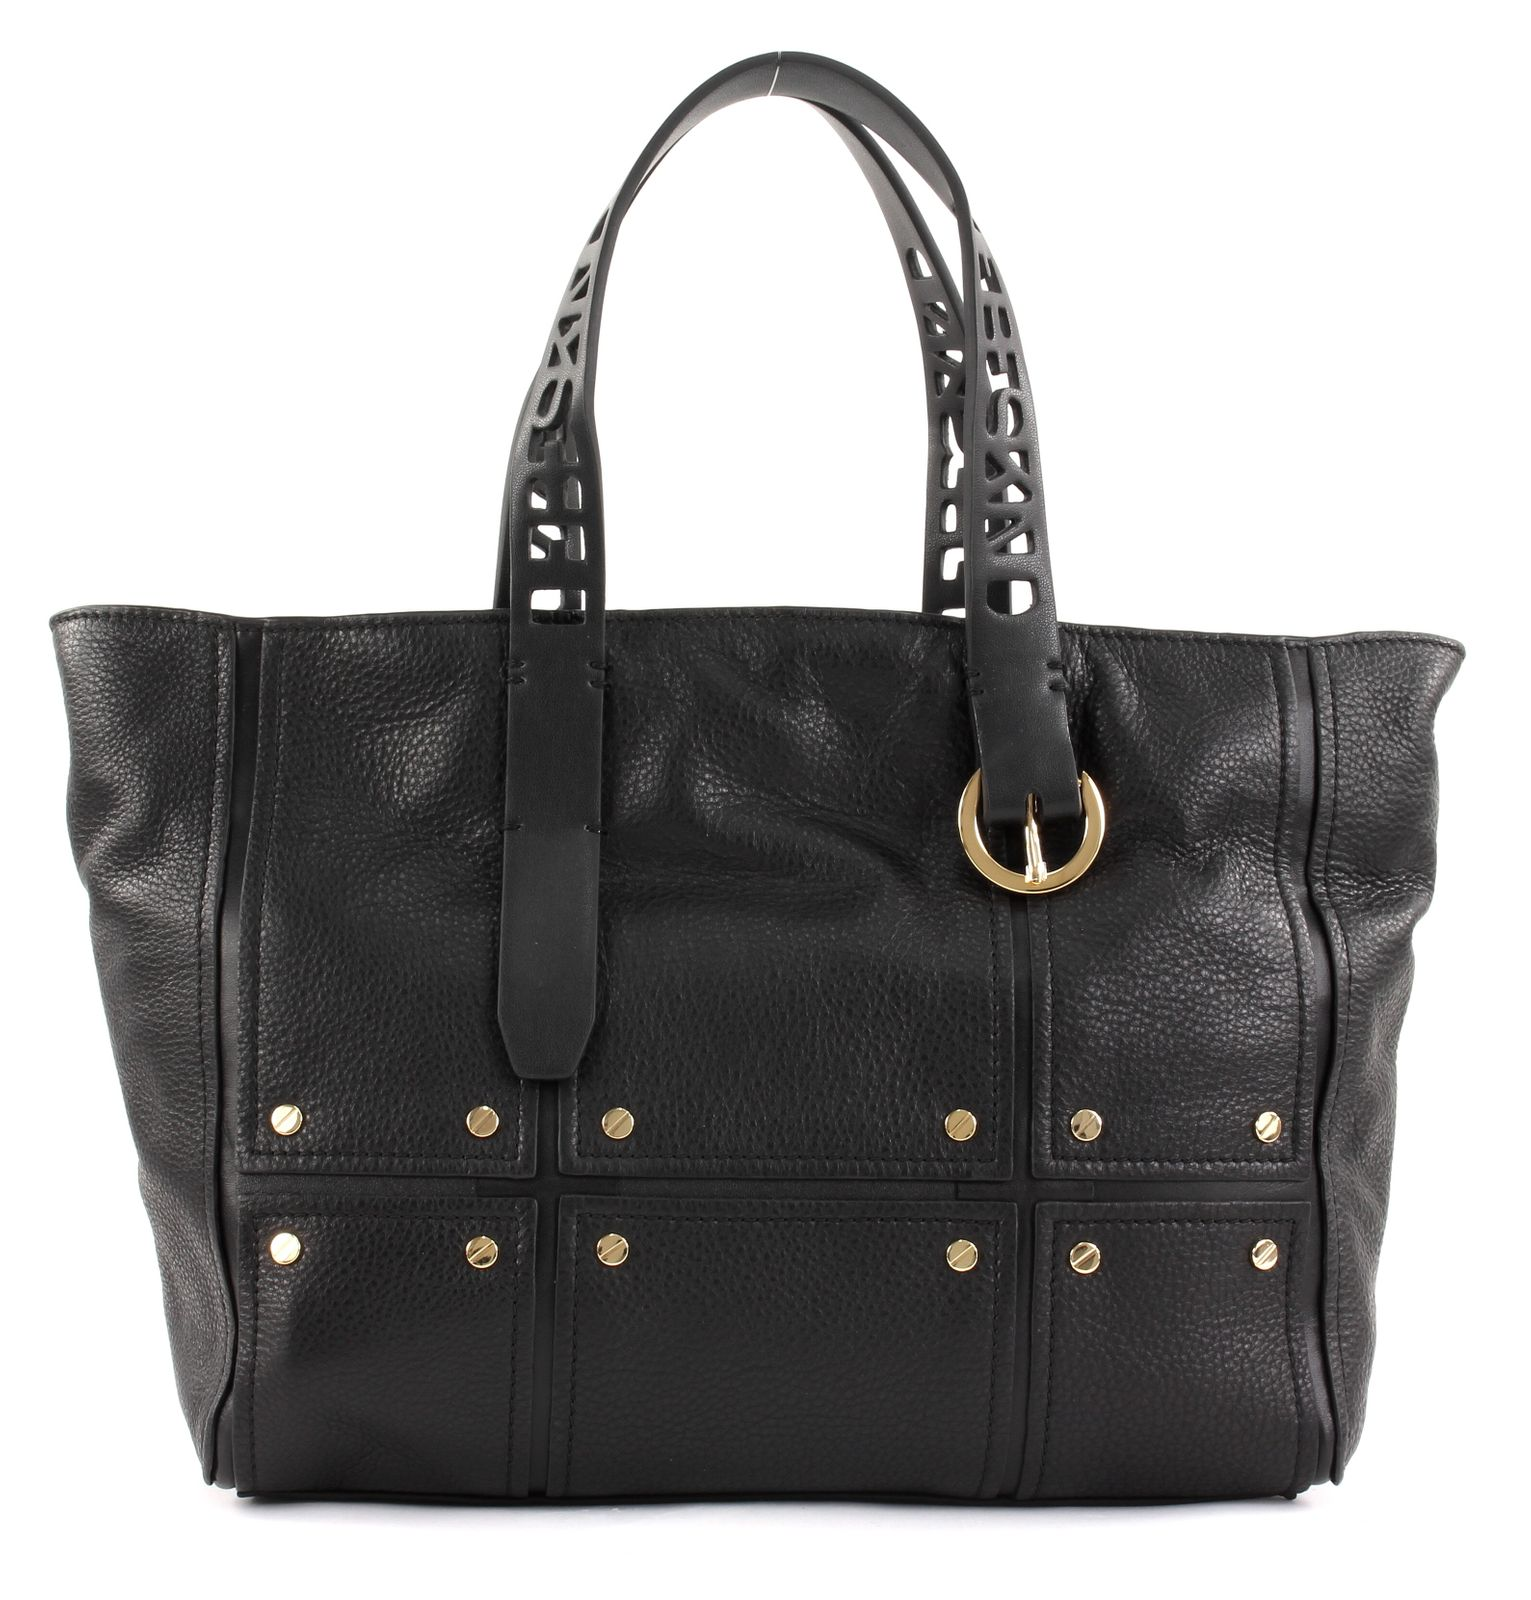 7d710597cee93 LIEBESKIND BERLIN Mix N`Patch Pepple Tote M Handtasche Tasche Black ...